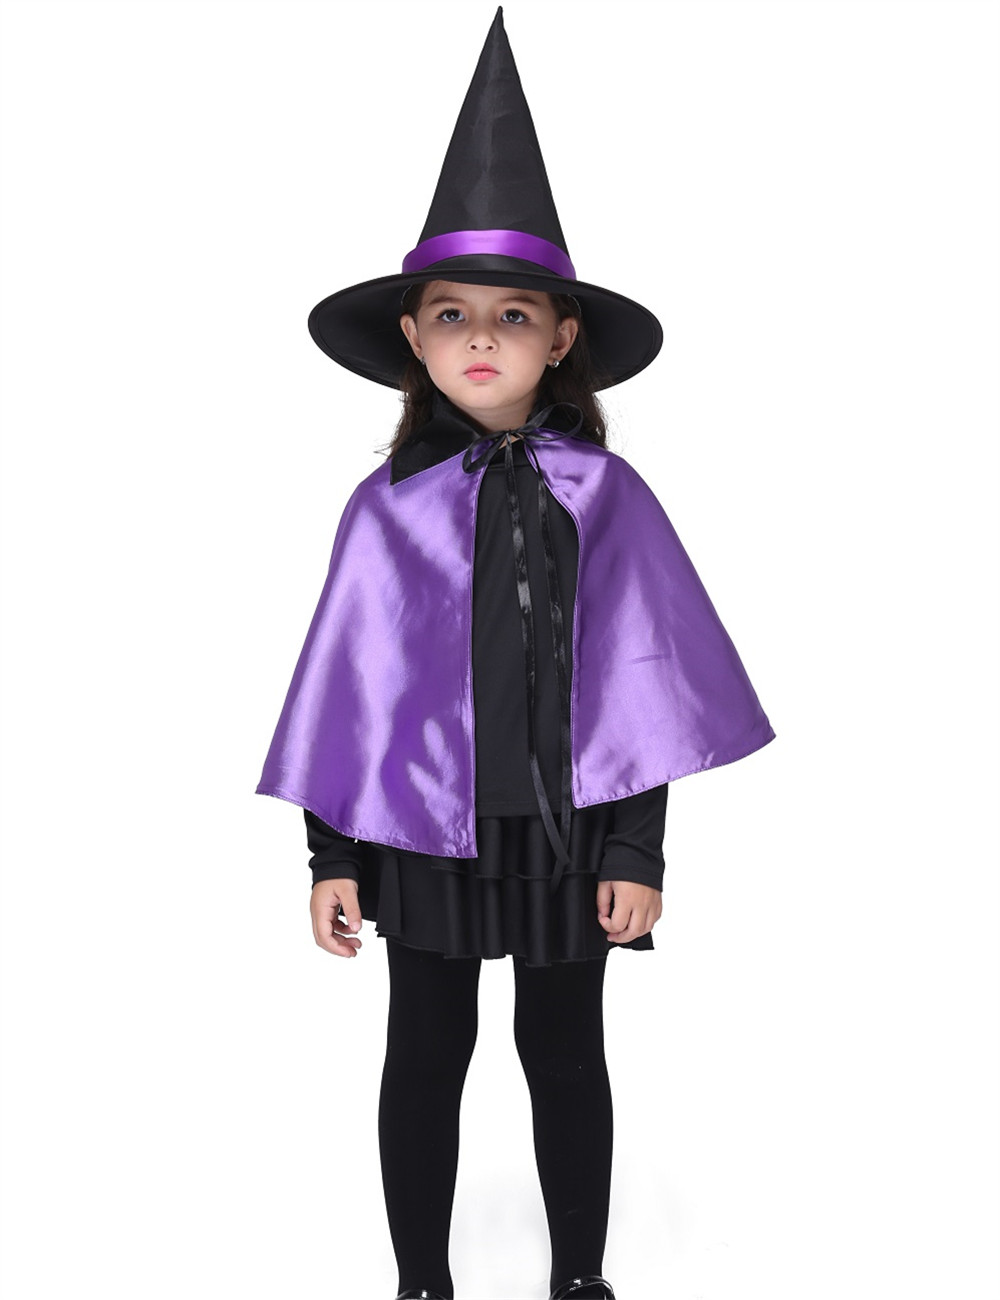 Compare Prices on Kids Witch Costumes- Online Shopping/Buy Low ...